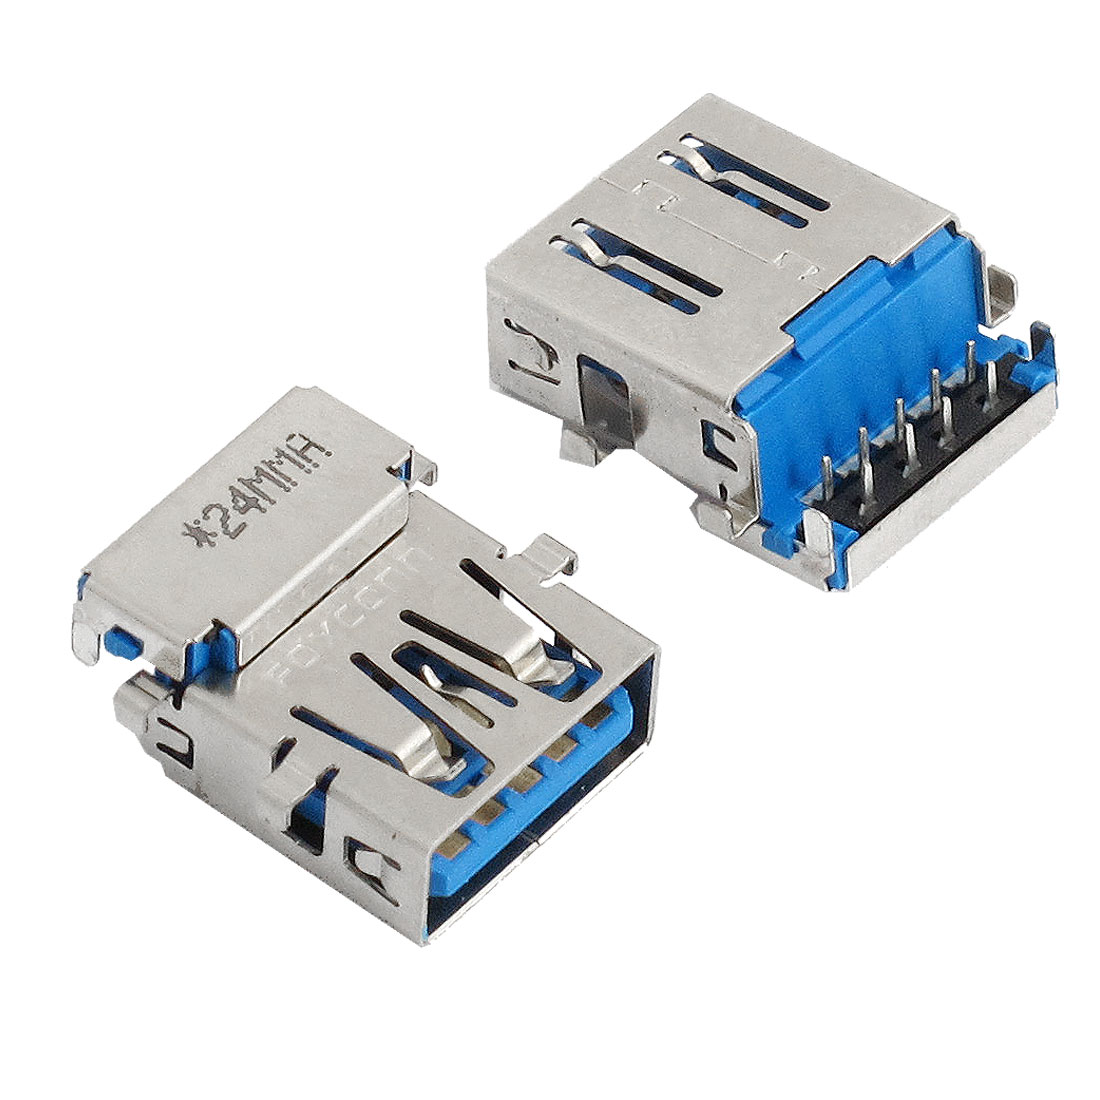 2 Pcs USB 3.0 Jack Connectors Type A Female 90 Degree 9 Pin DIP